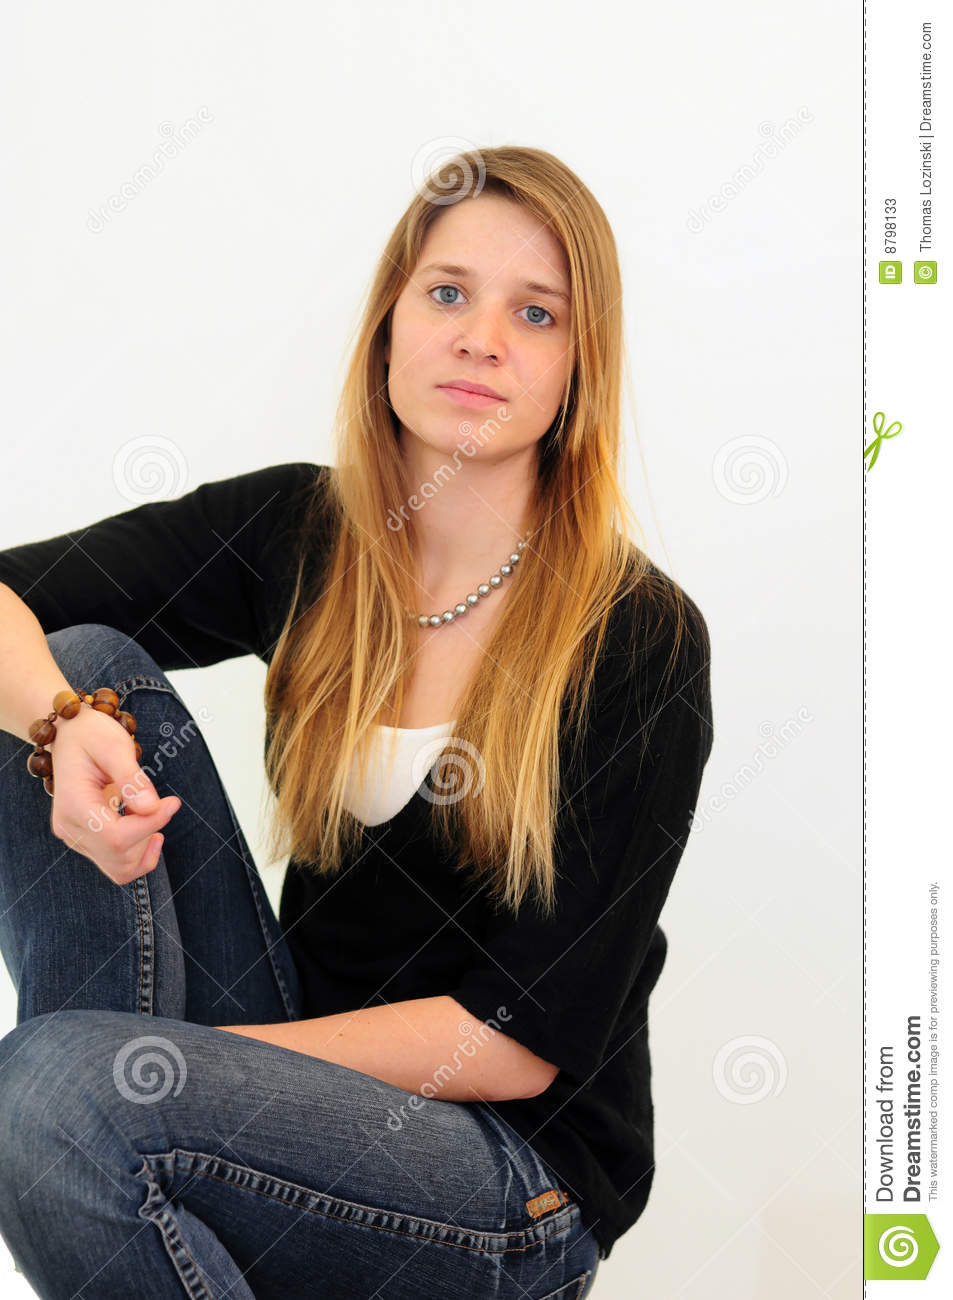 Teen Girl Jeans Stock Photos